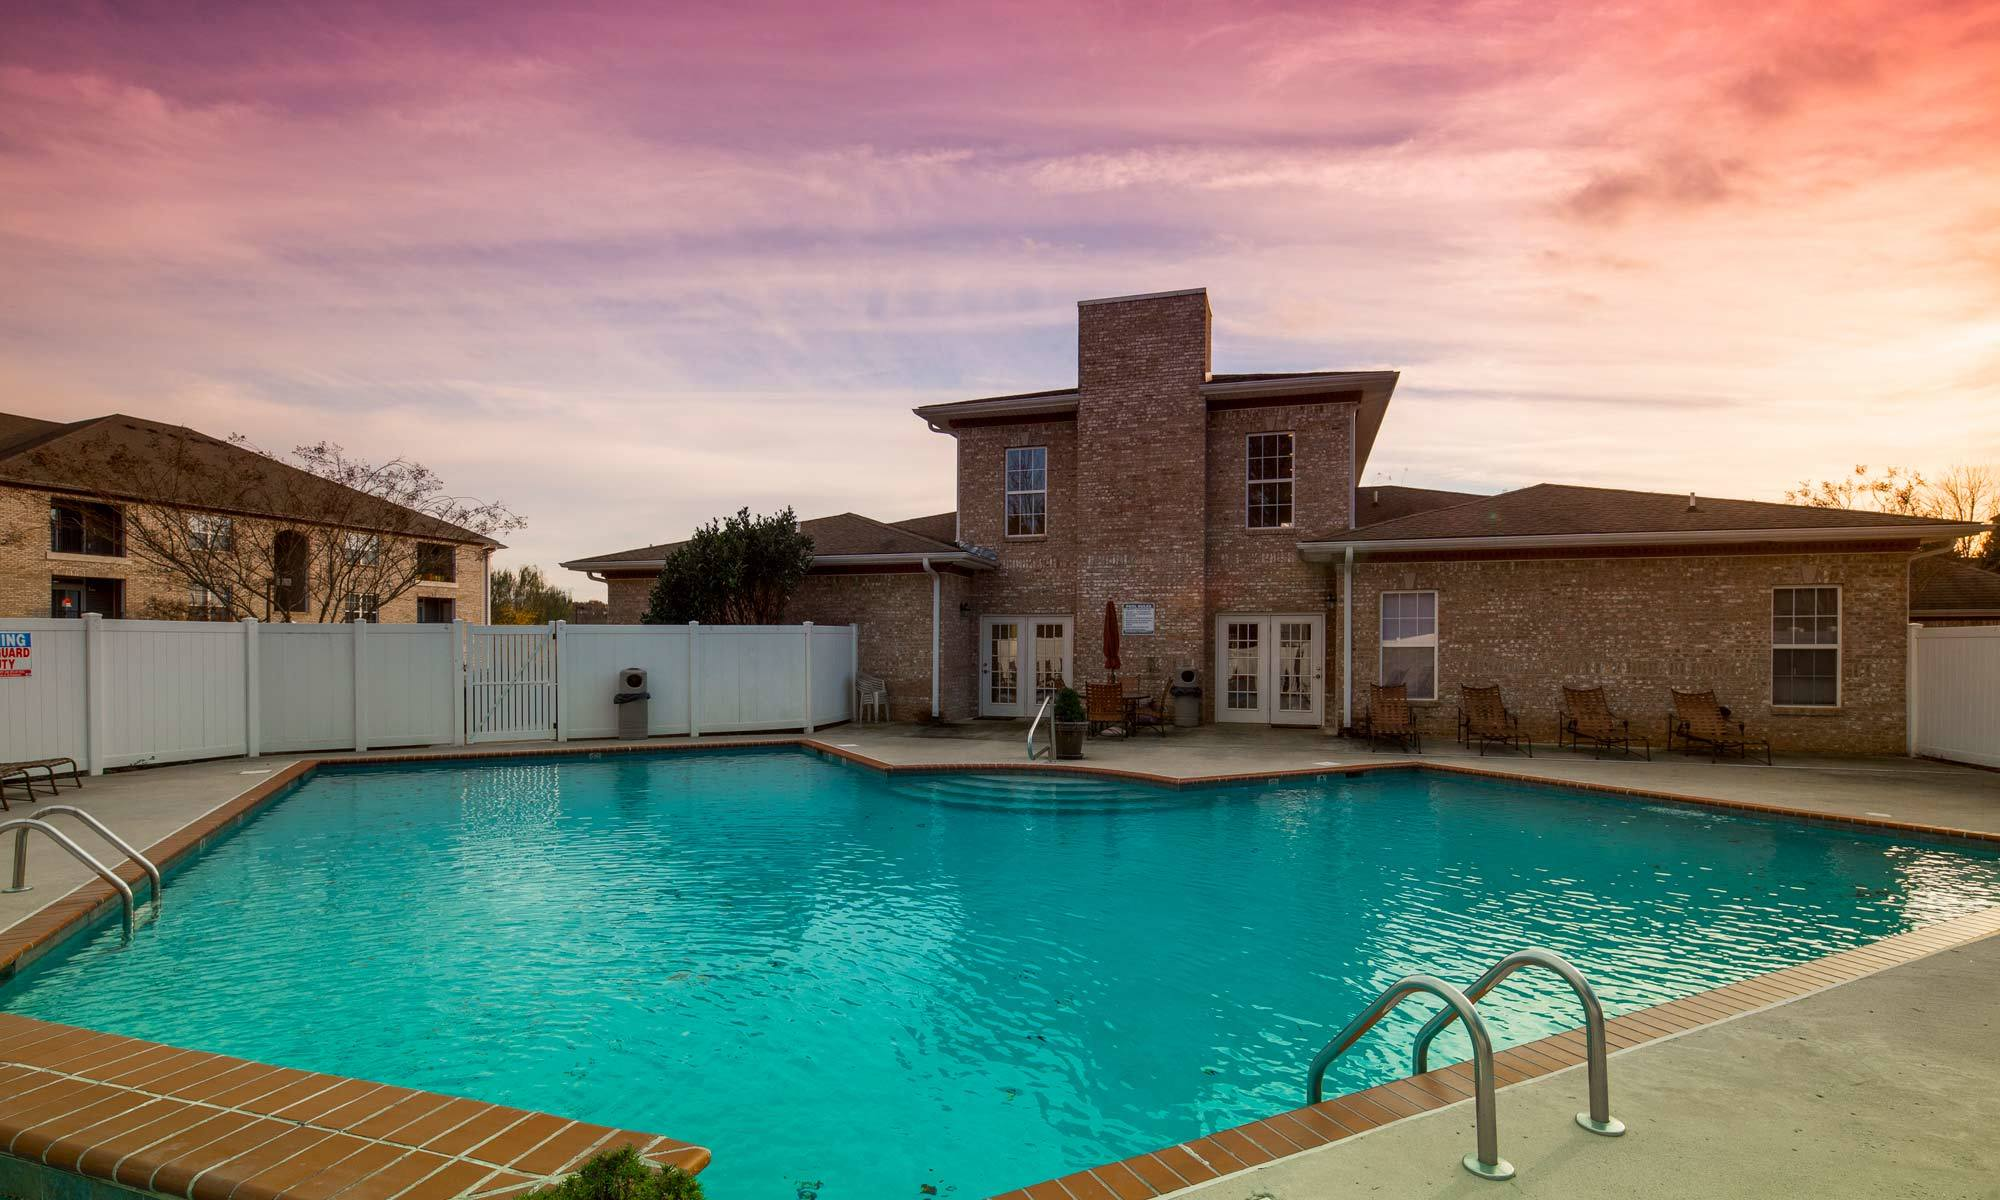 apartments in providence village area huntsville al south huntsville al apartments huntsville parc